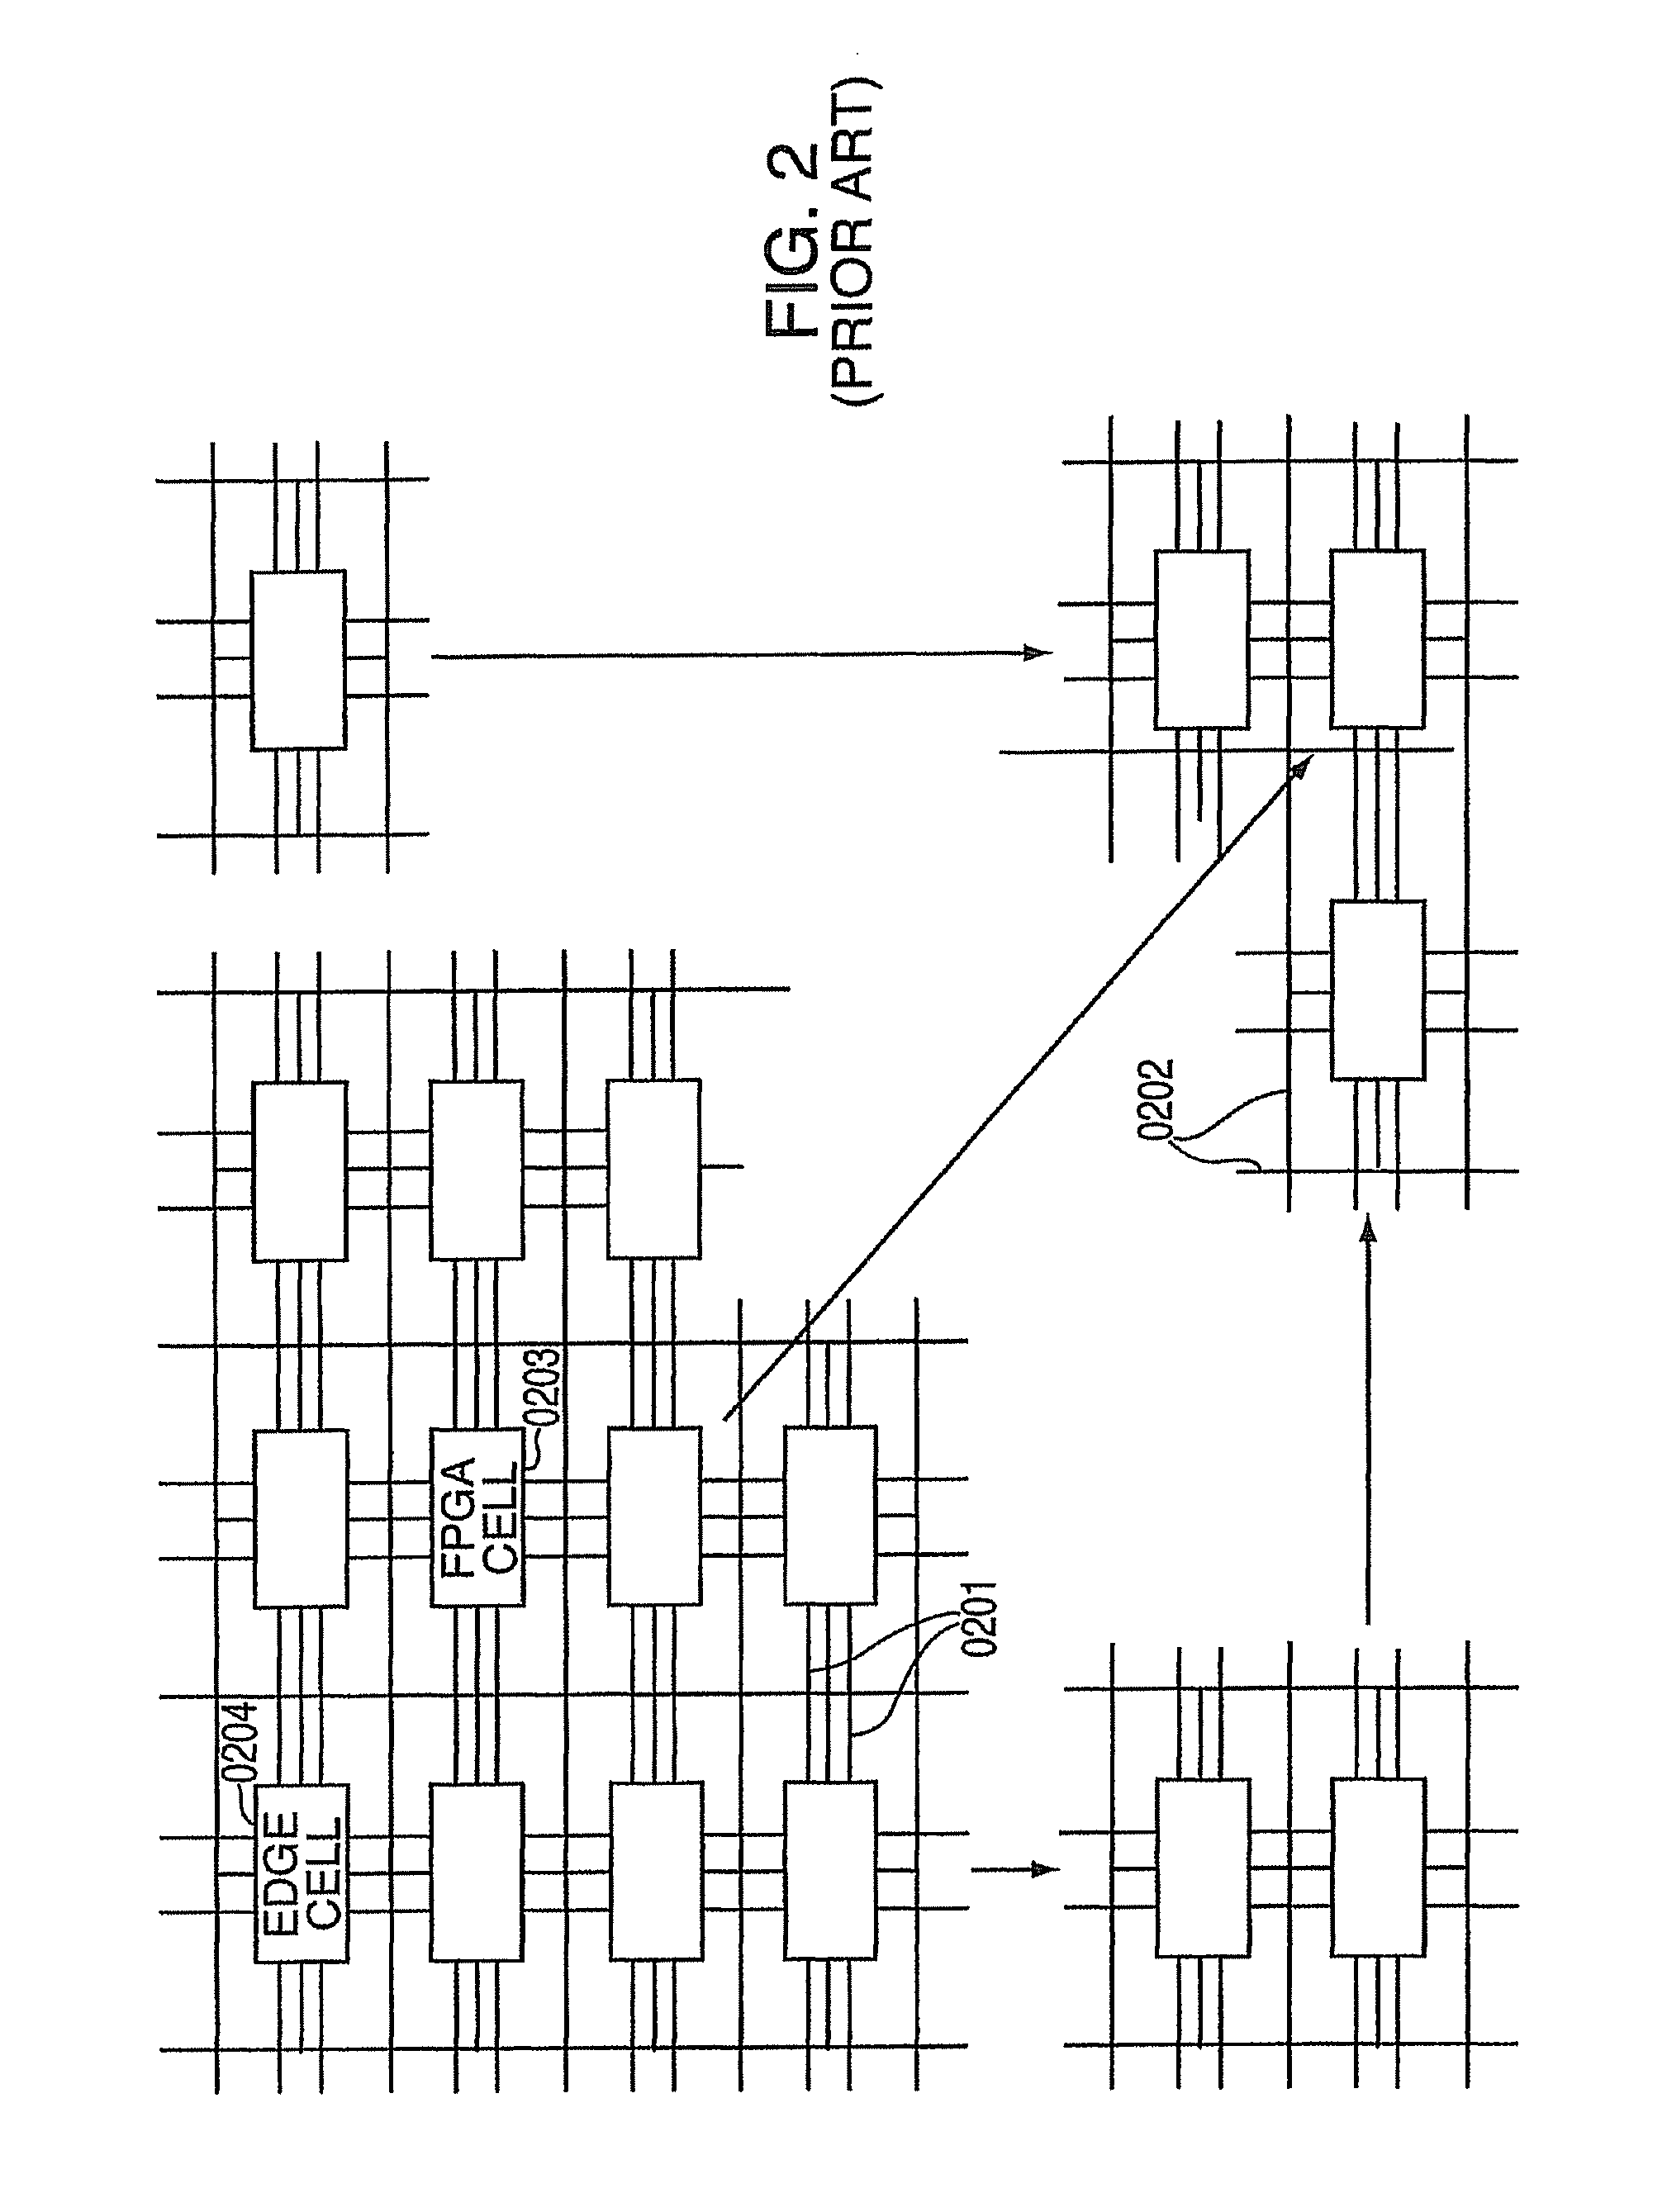 Lasko Heater Wiring Diagram moreover Marley Heaters Wiring Diagram together with Camco Thermostat Wiring Diagram in addition Marley Baseboard Heater Wiring Diagram as well 120v Baseboard Heater Thermostat Wiring Diagram Pdf. on fahrenheat baseboard heater wiring diagram